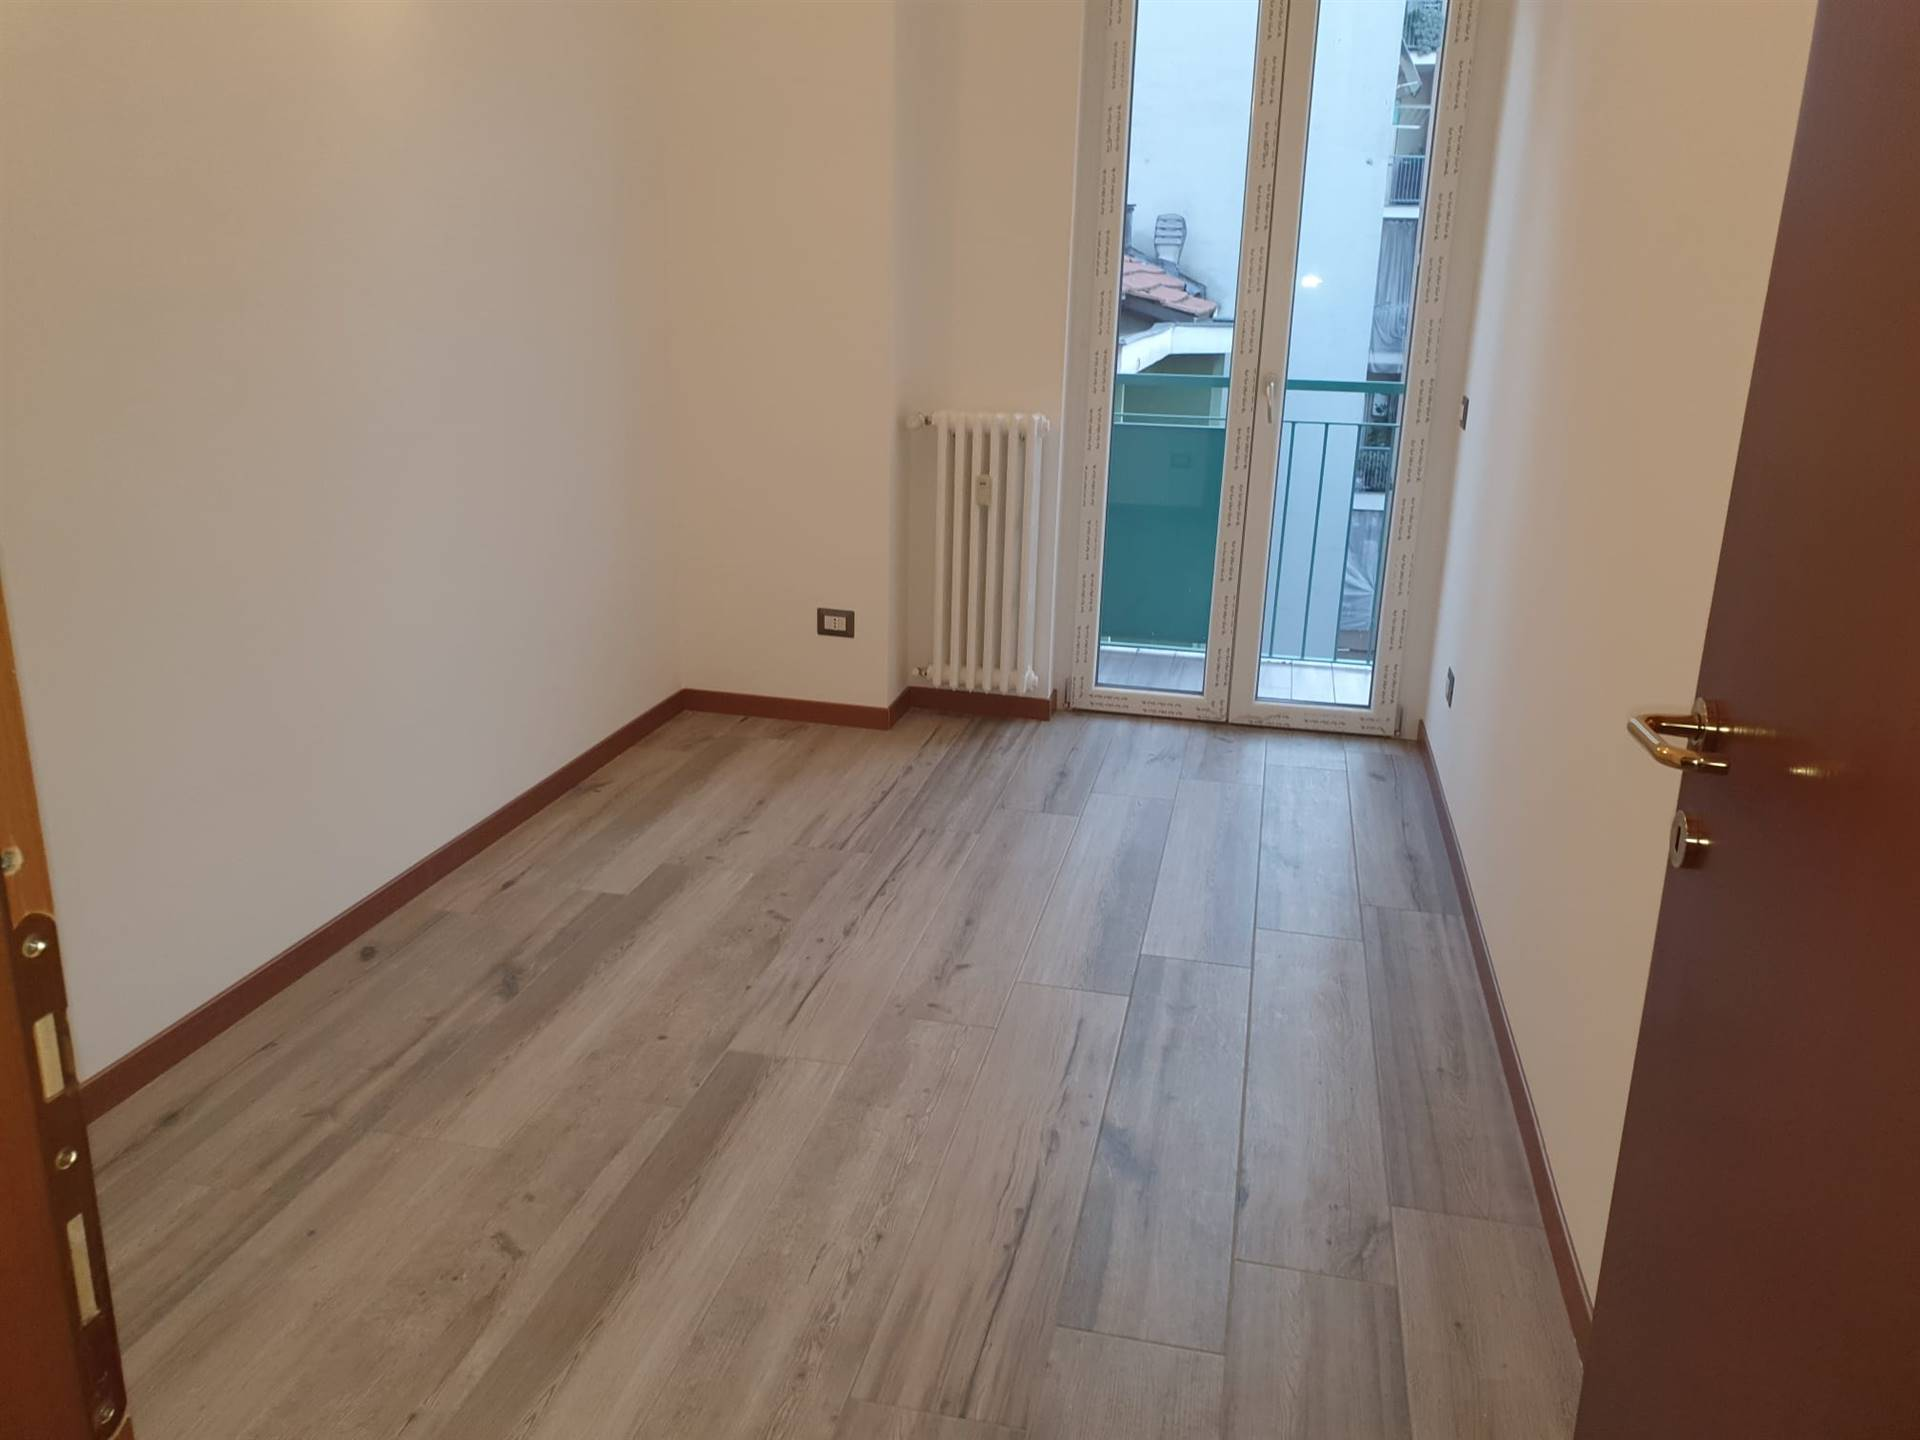 SESTO SAN GIOVANNI, Apartment for sale of 75 Sq. mt., Restored, Heating Centralized, Energetic class: G, Epi: 175 kwh/m2 year, placed at 3° on 4,